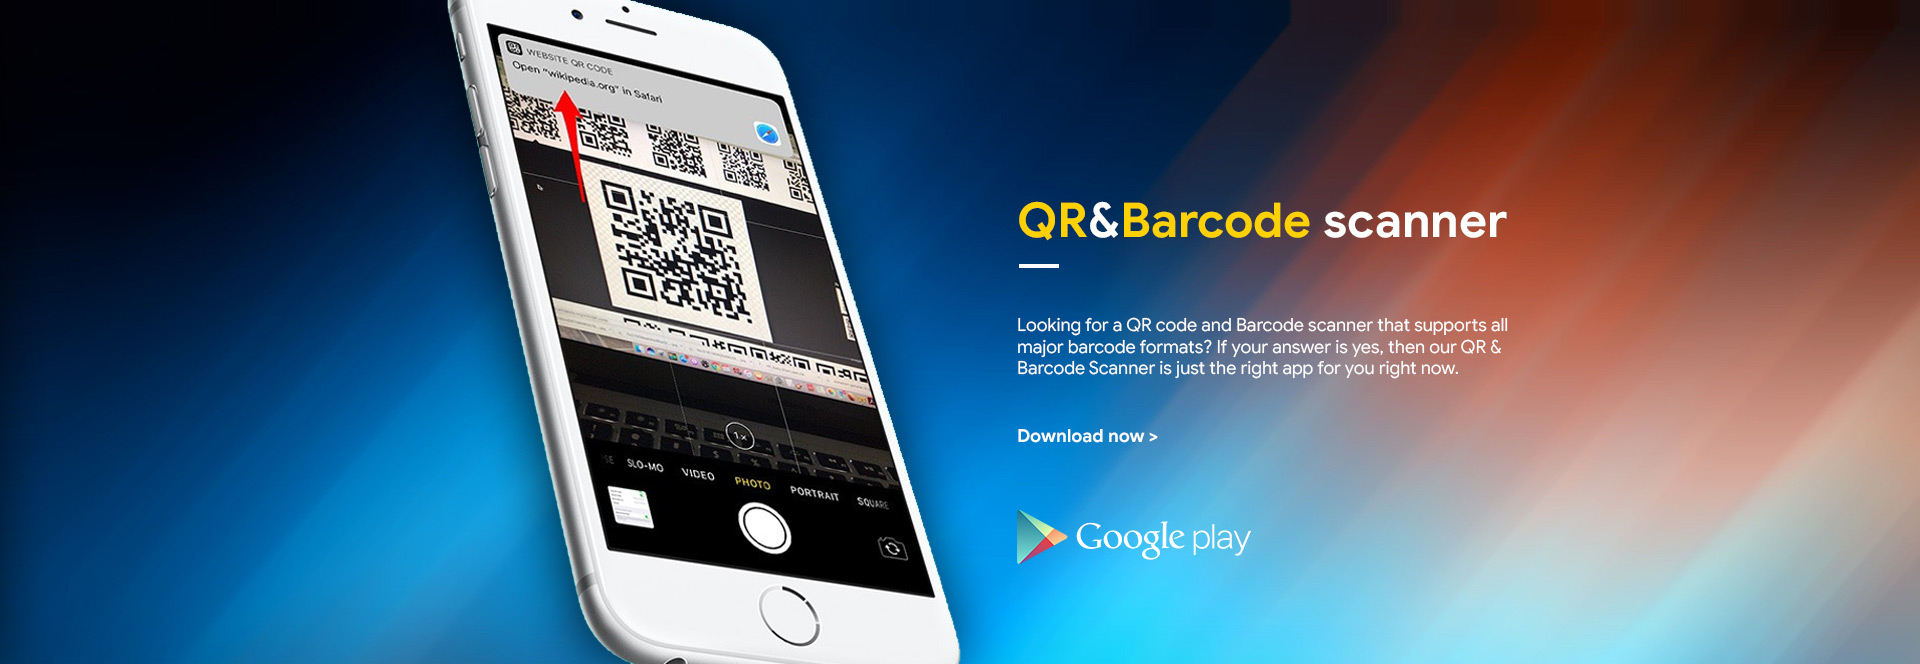 QR and Barcode Scanner